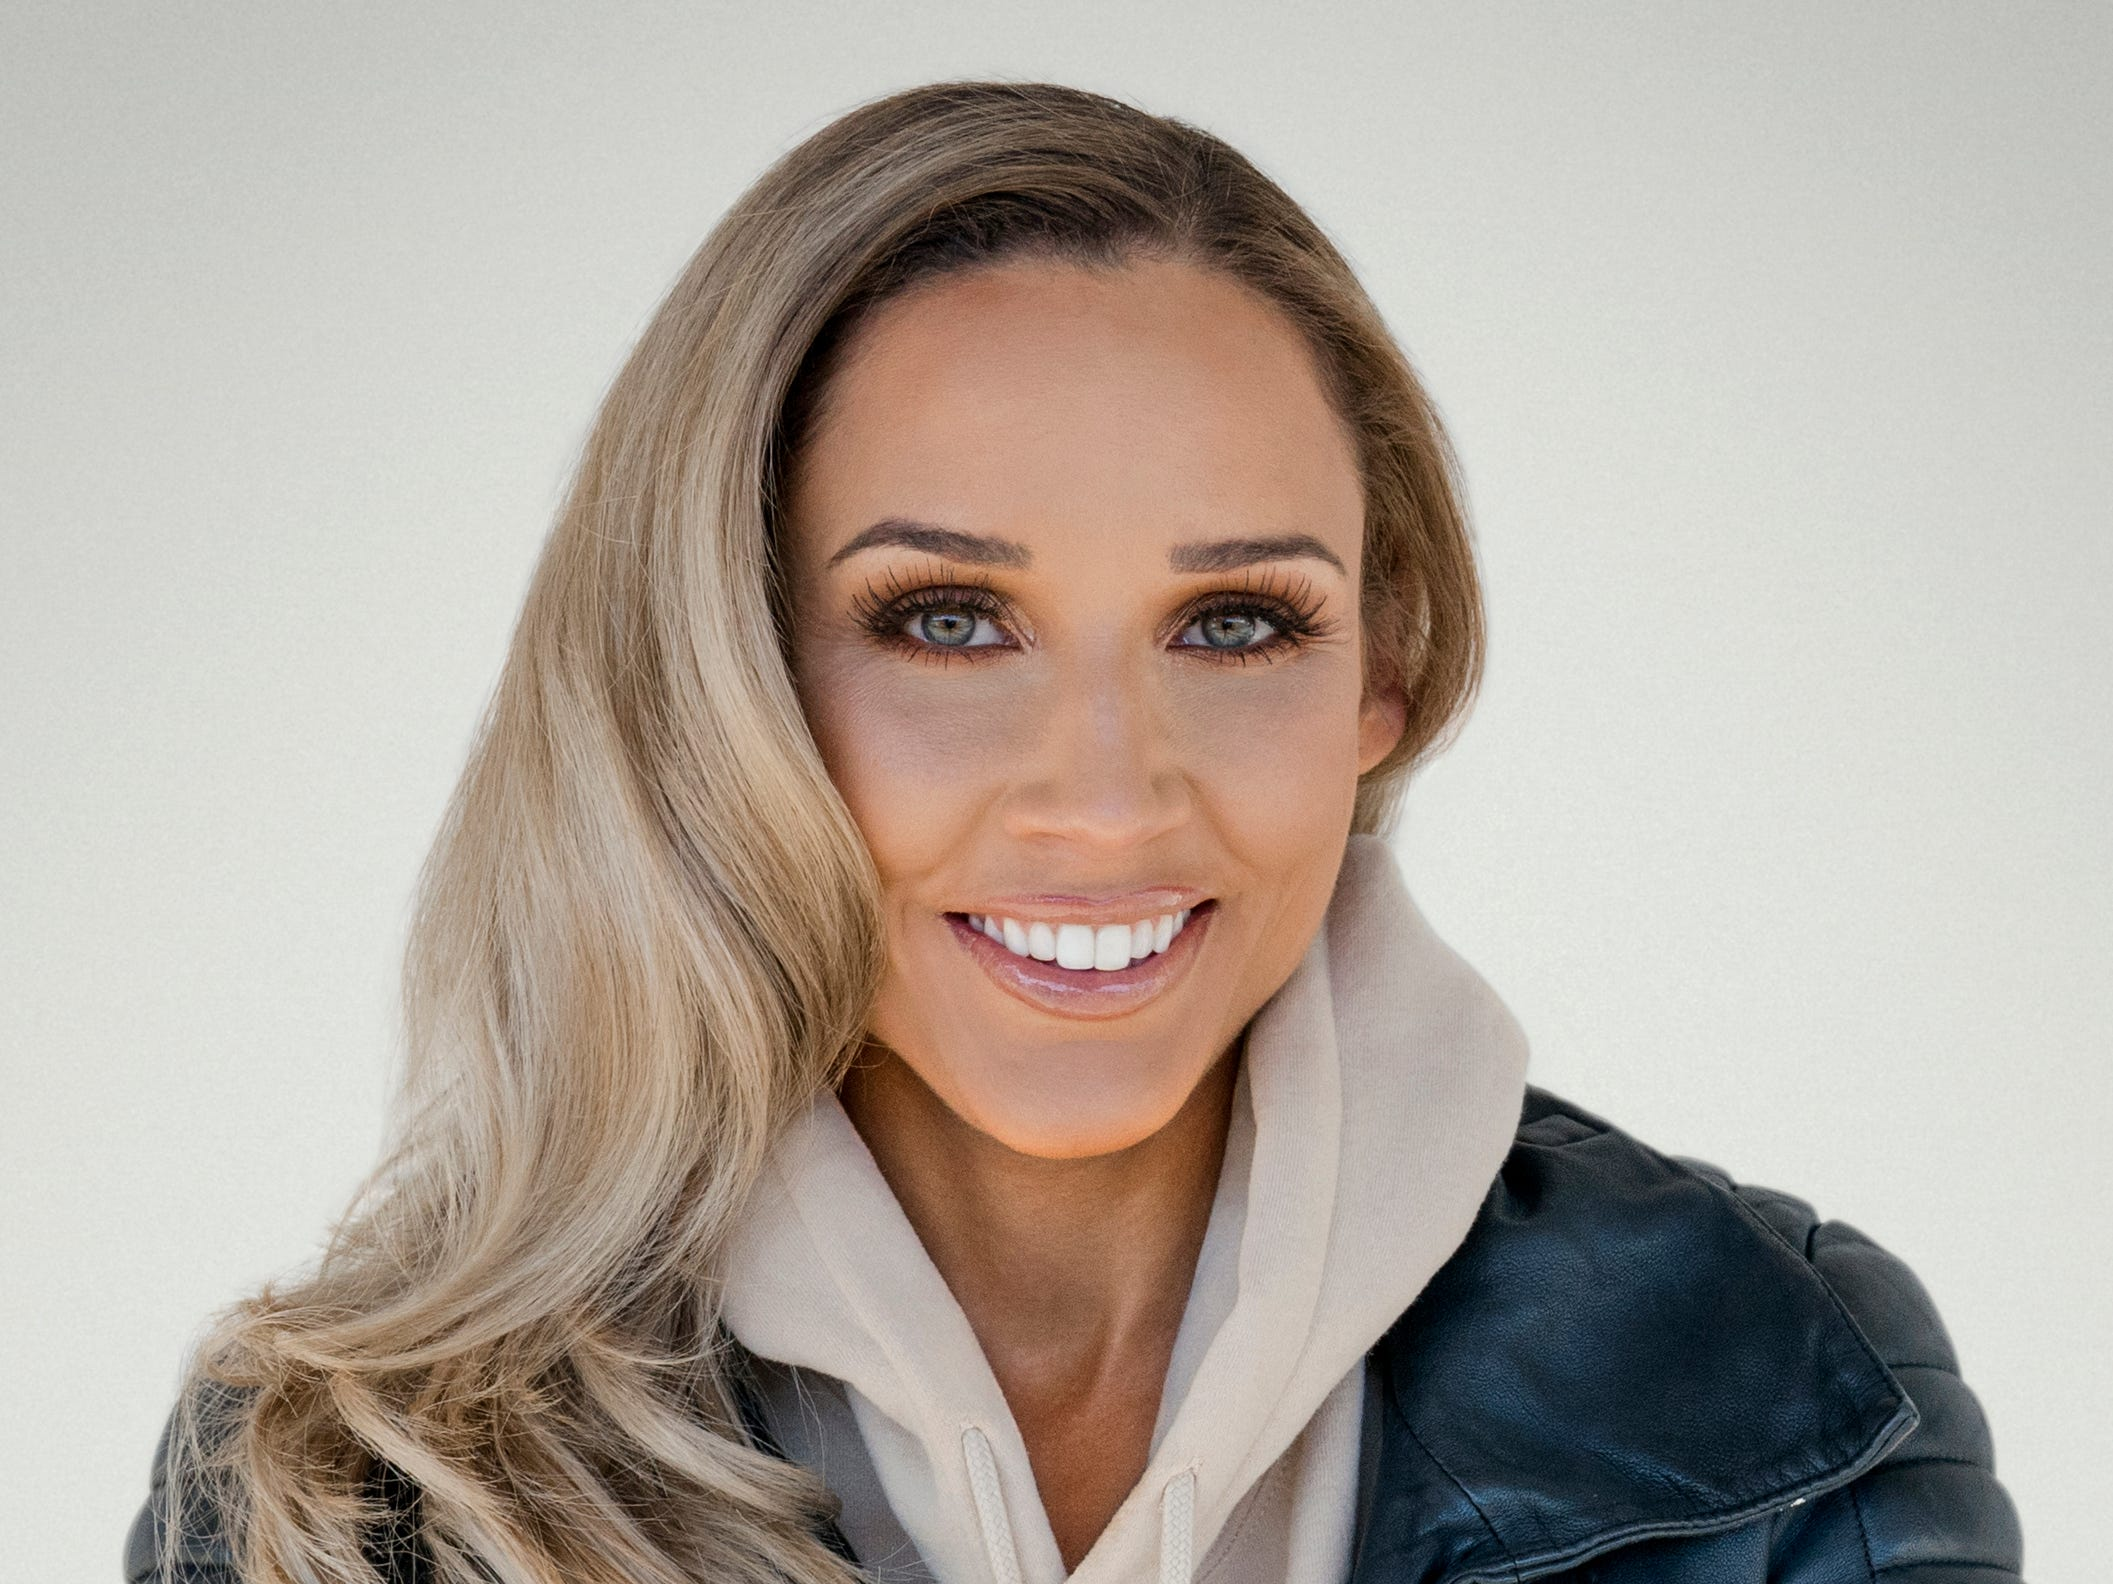 Lolo Jones to participate in the second season of BIG BROTHER: CELEBRITY EDITION. BIG BROTHER: CELEBRITY EDITION launches with a two-night premiere event Monday, Jan. 21 (8:00-9:00 PM, ET/PT) and Tuesday, Jan. 22 (8:00-9:00 PM, ET/PT) on the CBS Television Network.   Photo: Skip Bolen/CBS  ©2019 CBS Broadcasting, Inc. All Rights Reserved